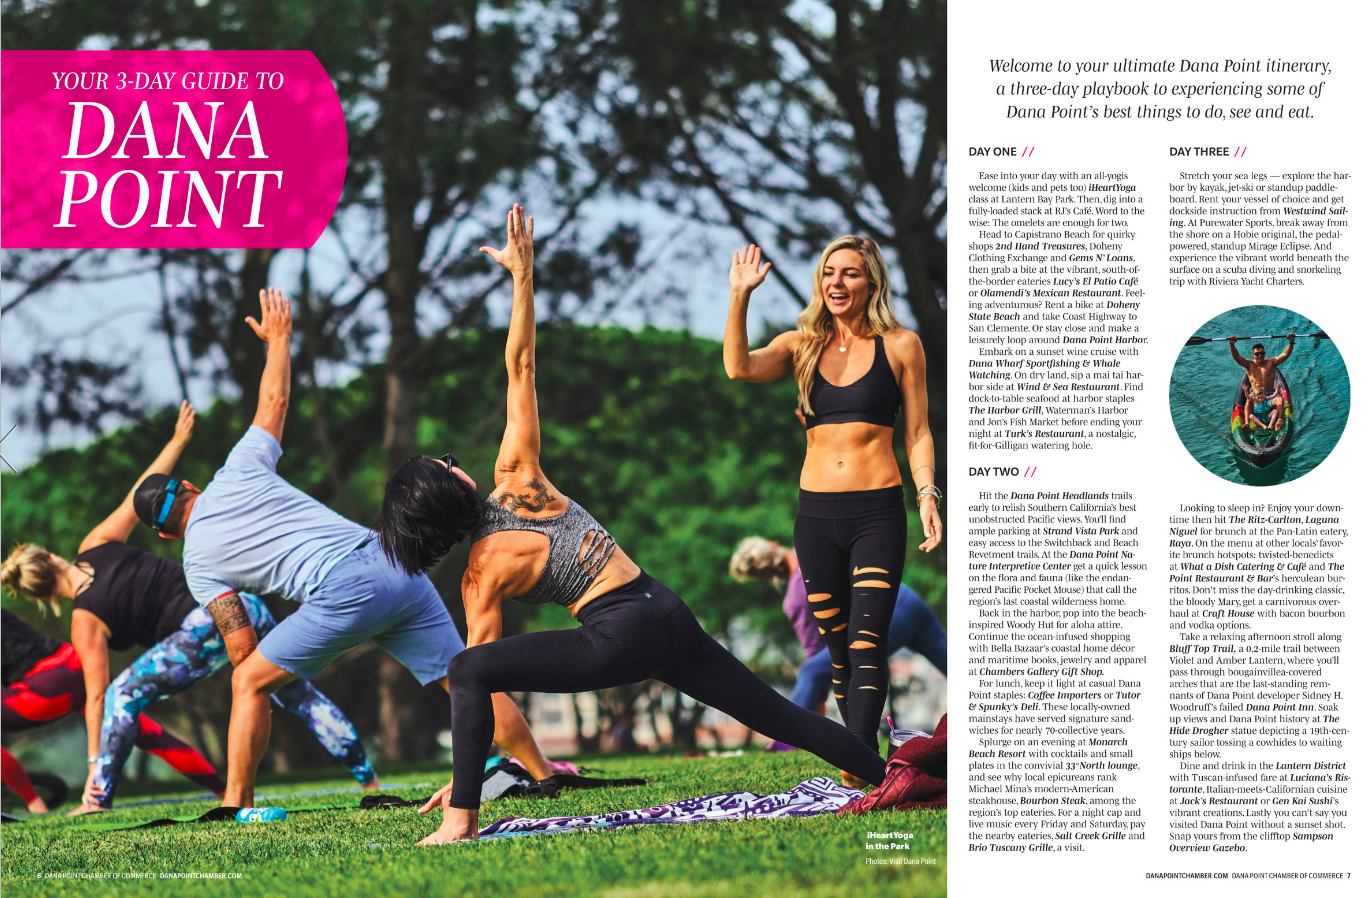 iHeartYoga Featured in Destination Dana Point